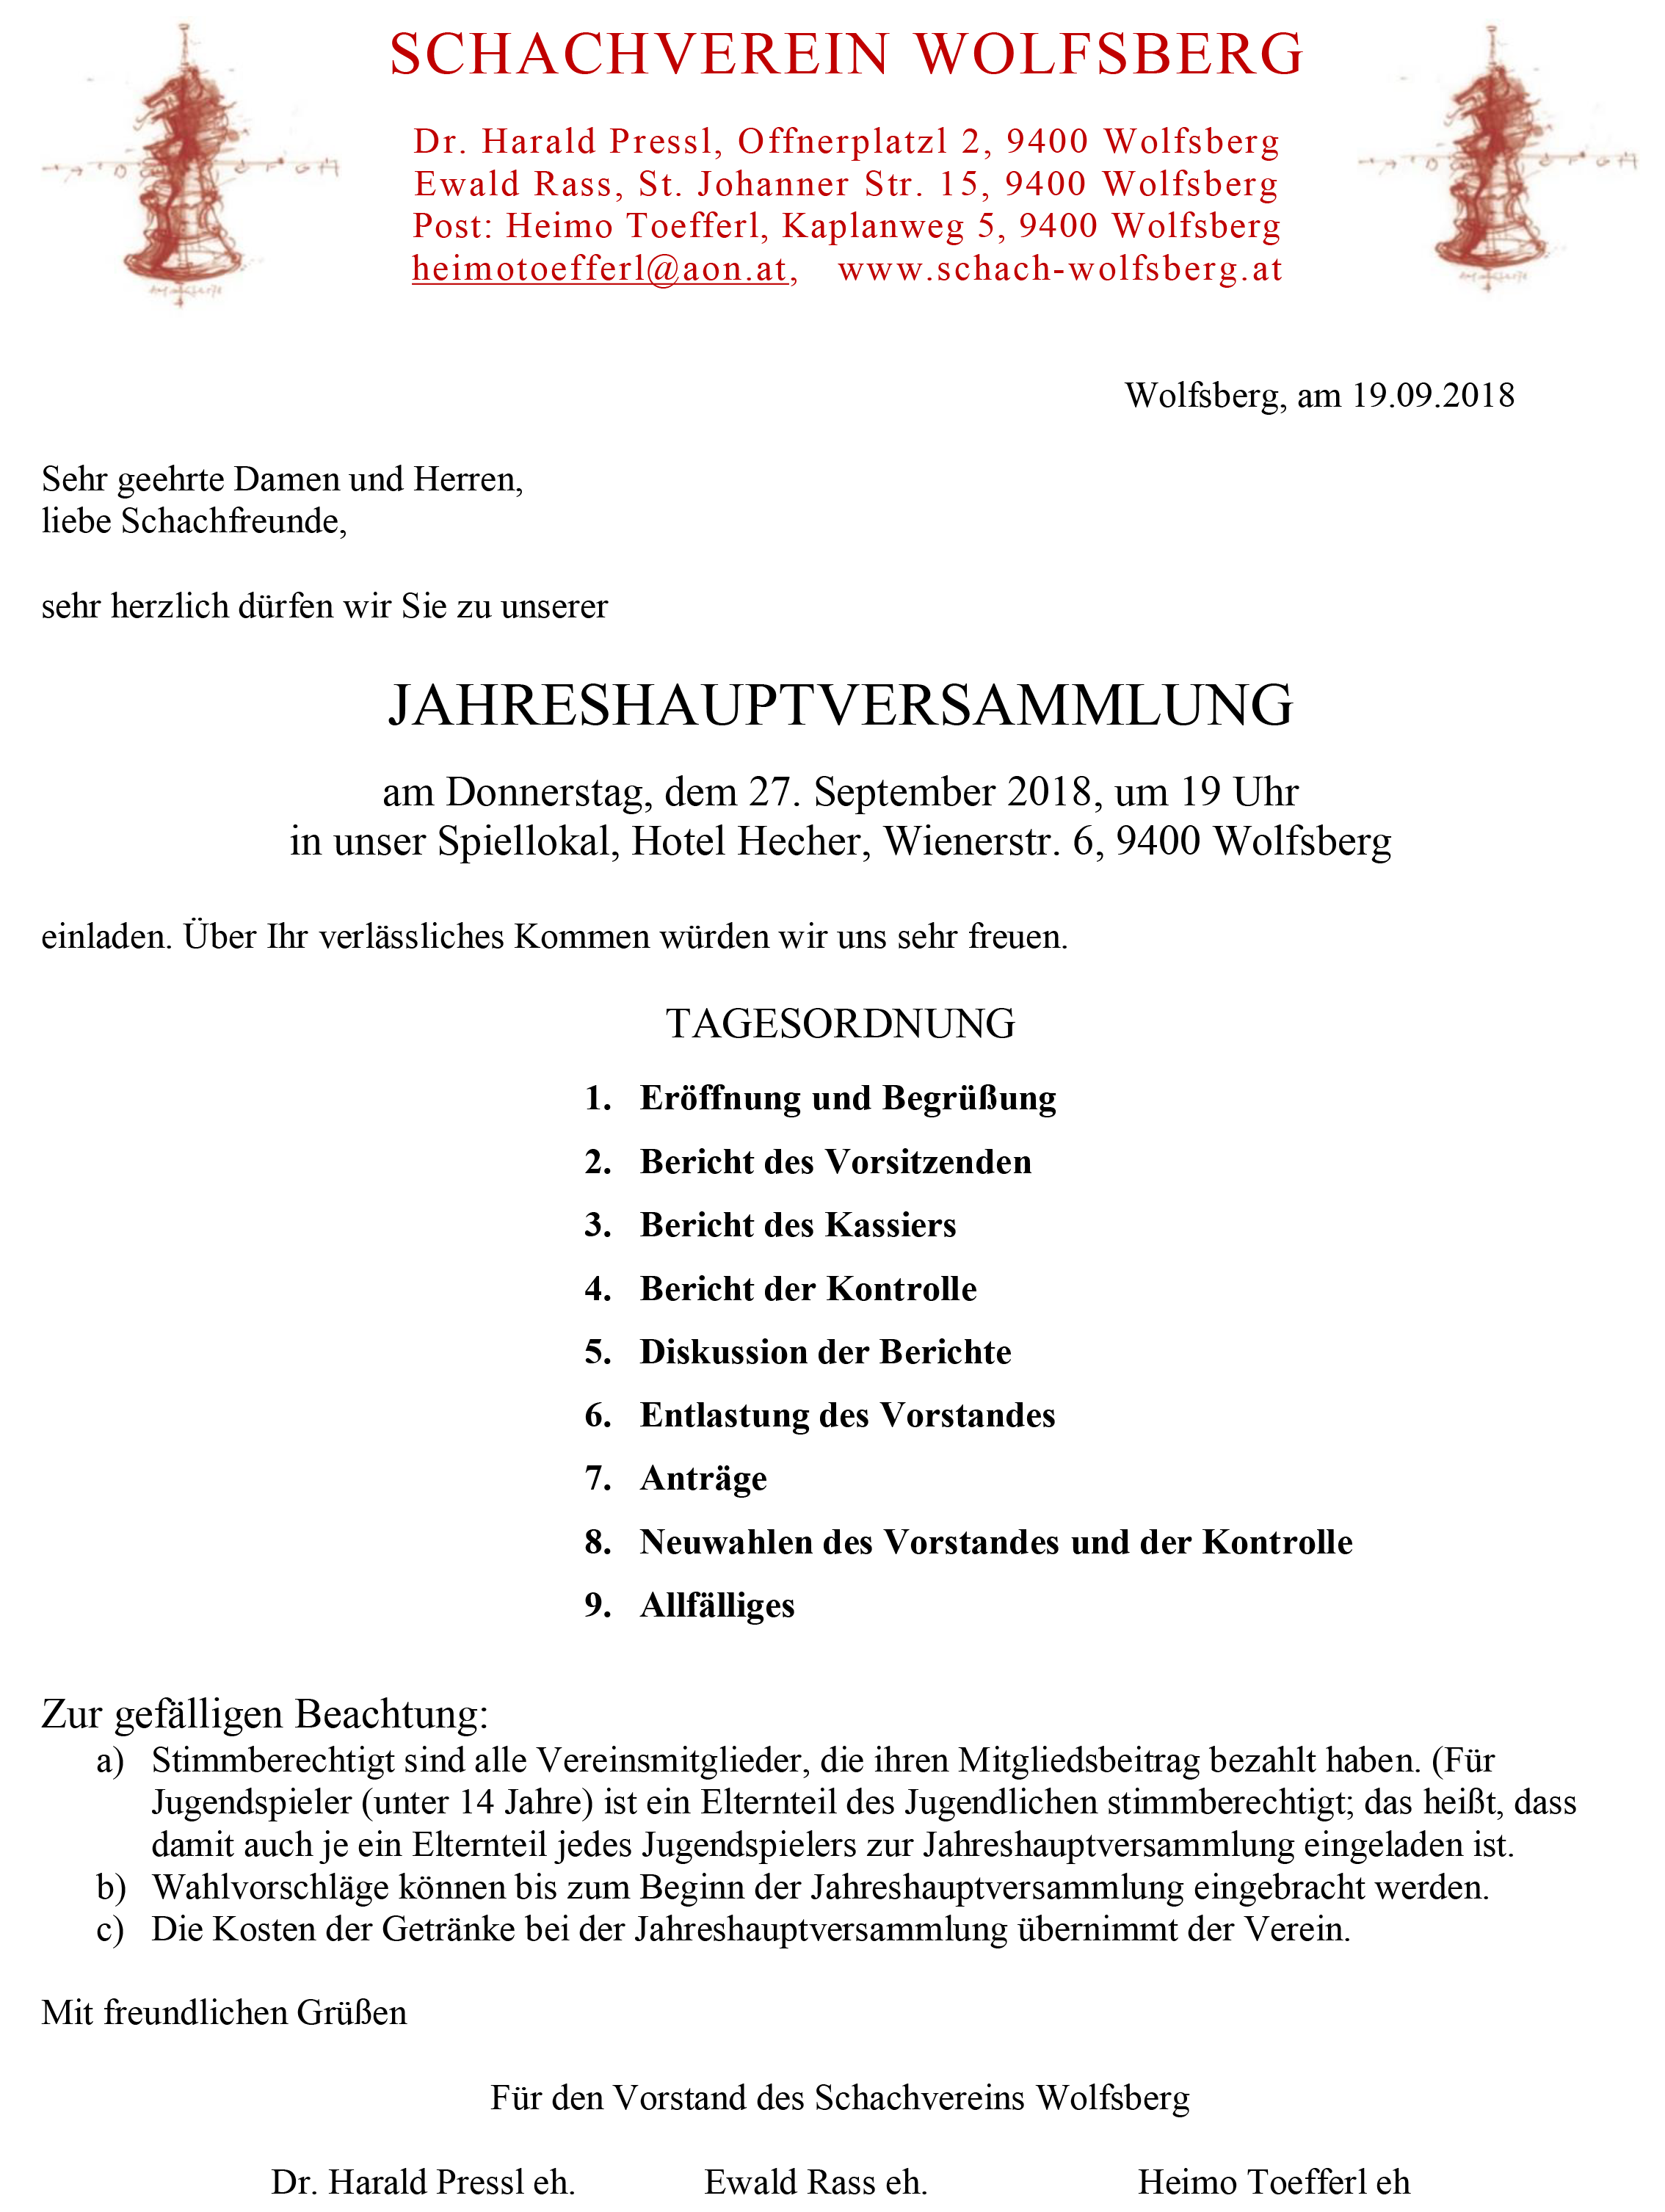 tl_files/opensite/content/JHVersammlung 2018-Einladung_org.png